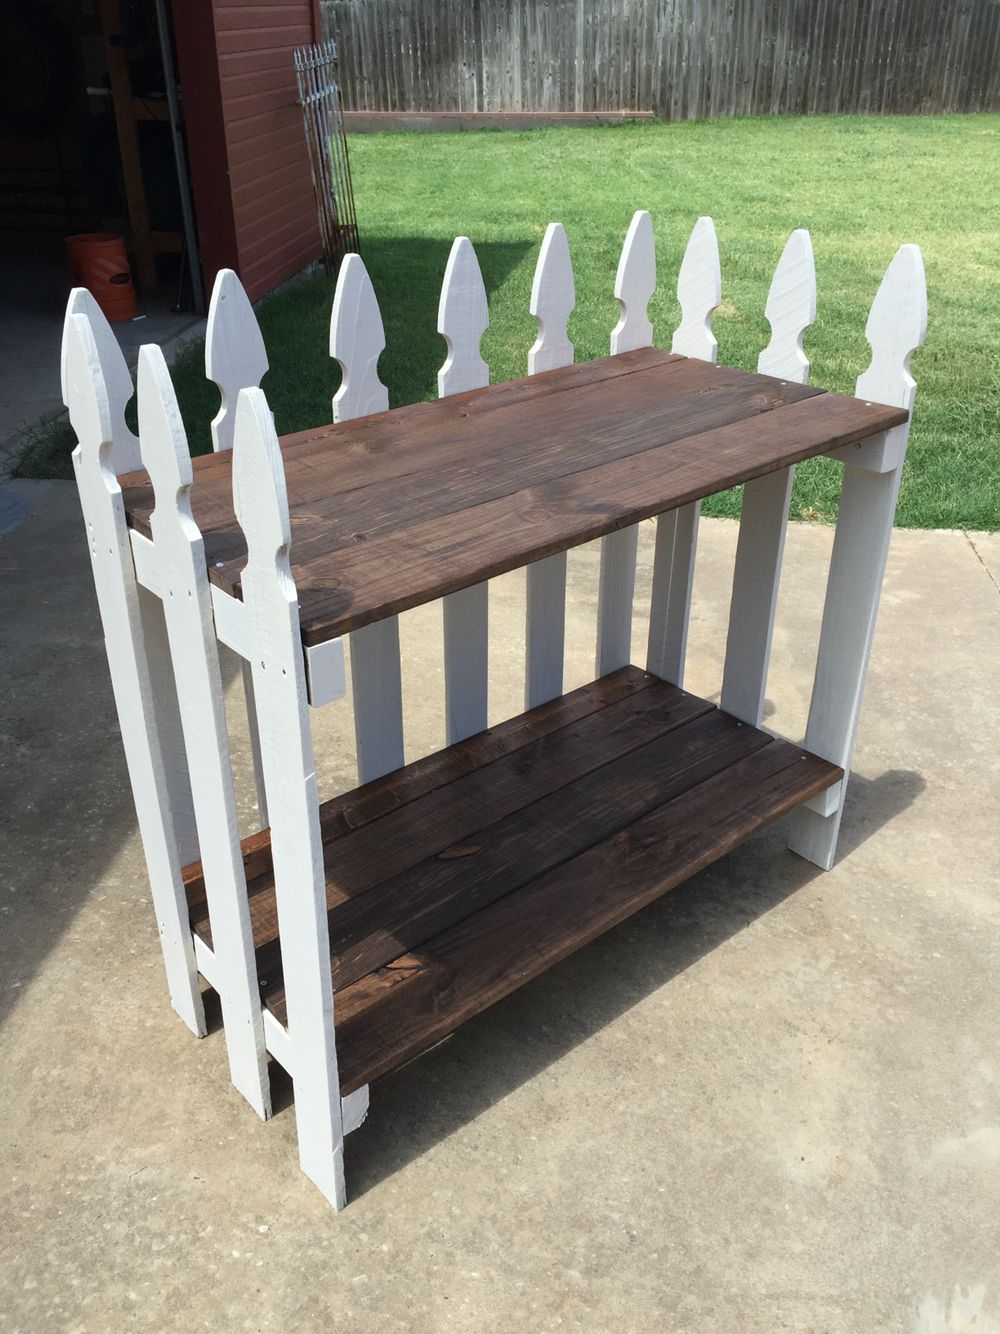 Used Old Fence Pickets To Make A Console Table Console Fence Pickets Table In 2020 Woodworking Woodworking Projects Gifts Awesome Woodworking Ideas